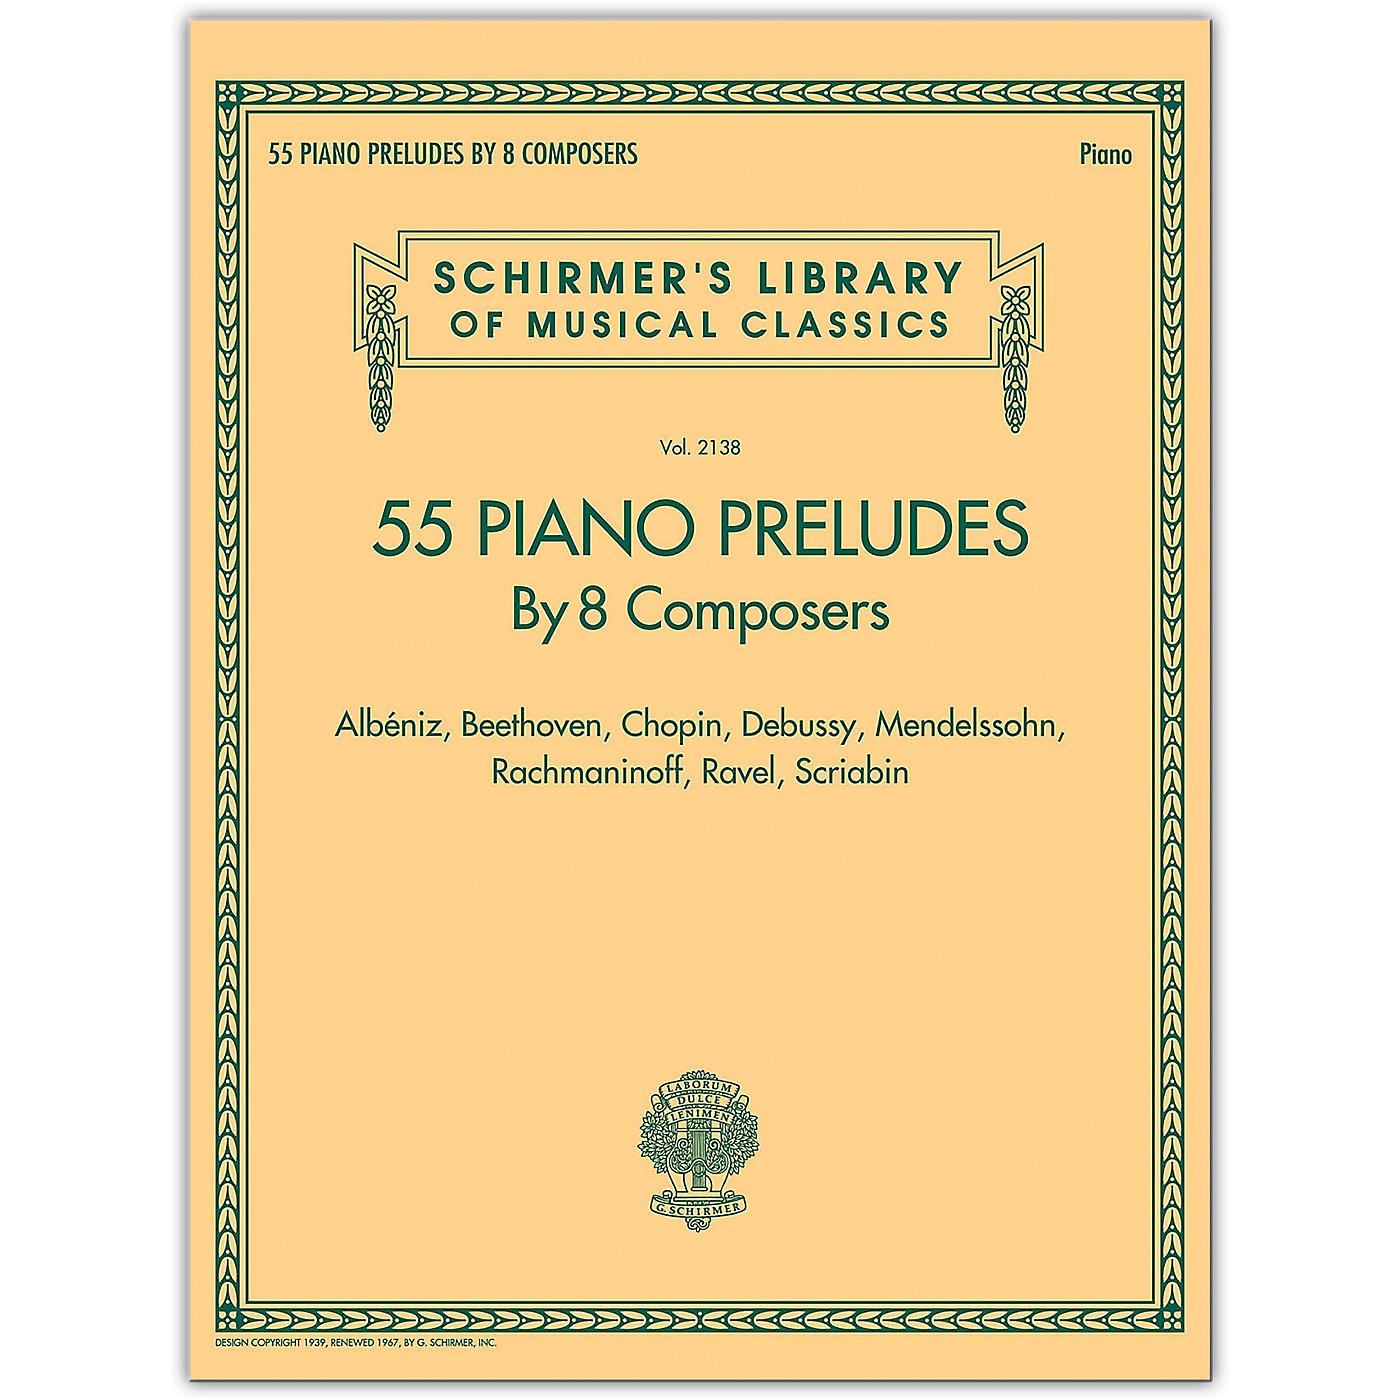 G. Schirmer 55 Piano Preludes By 8 Composers - Schirmer's Library Of Musical Classics thumbnail